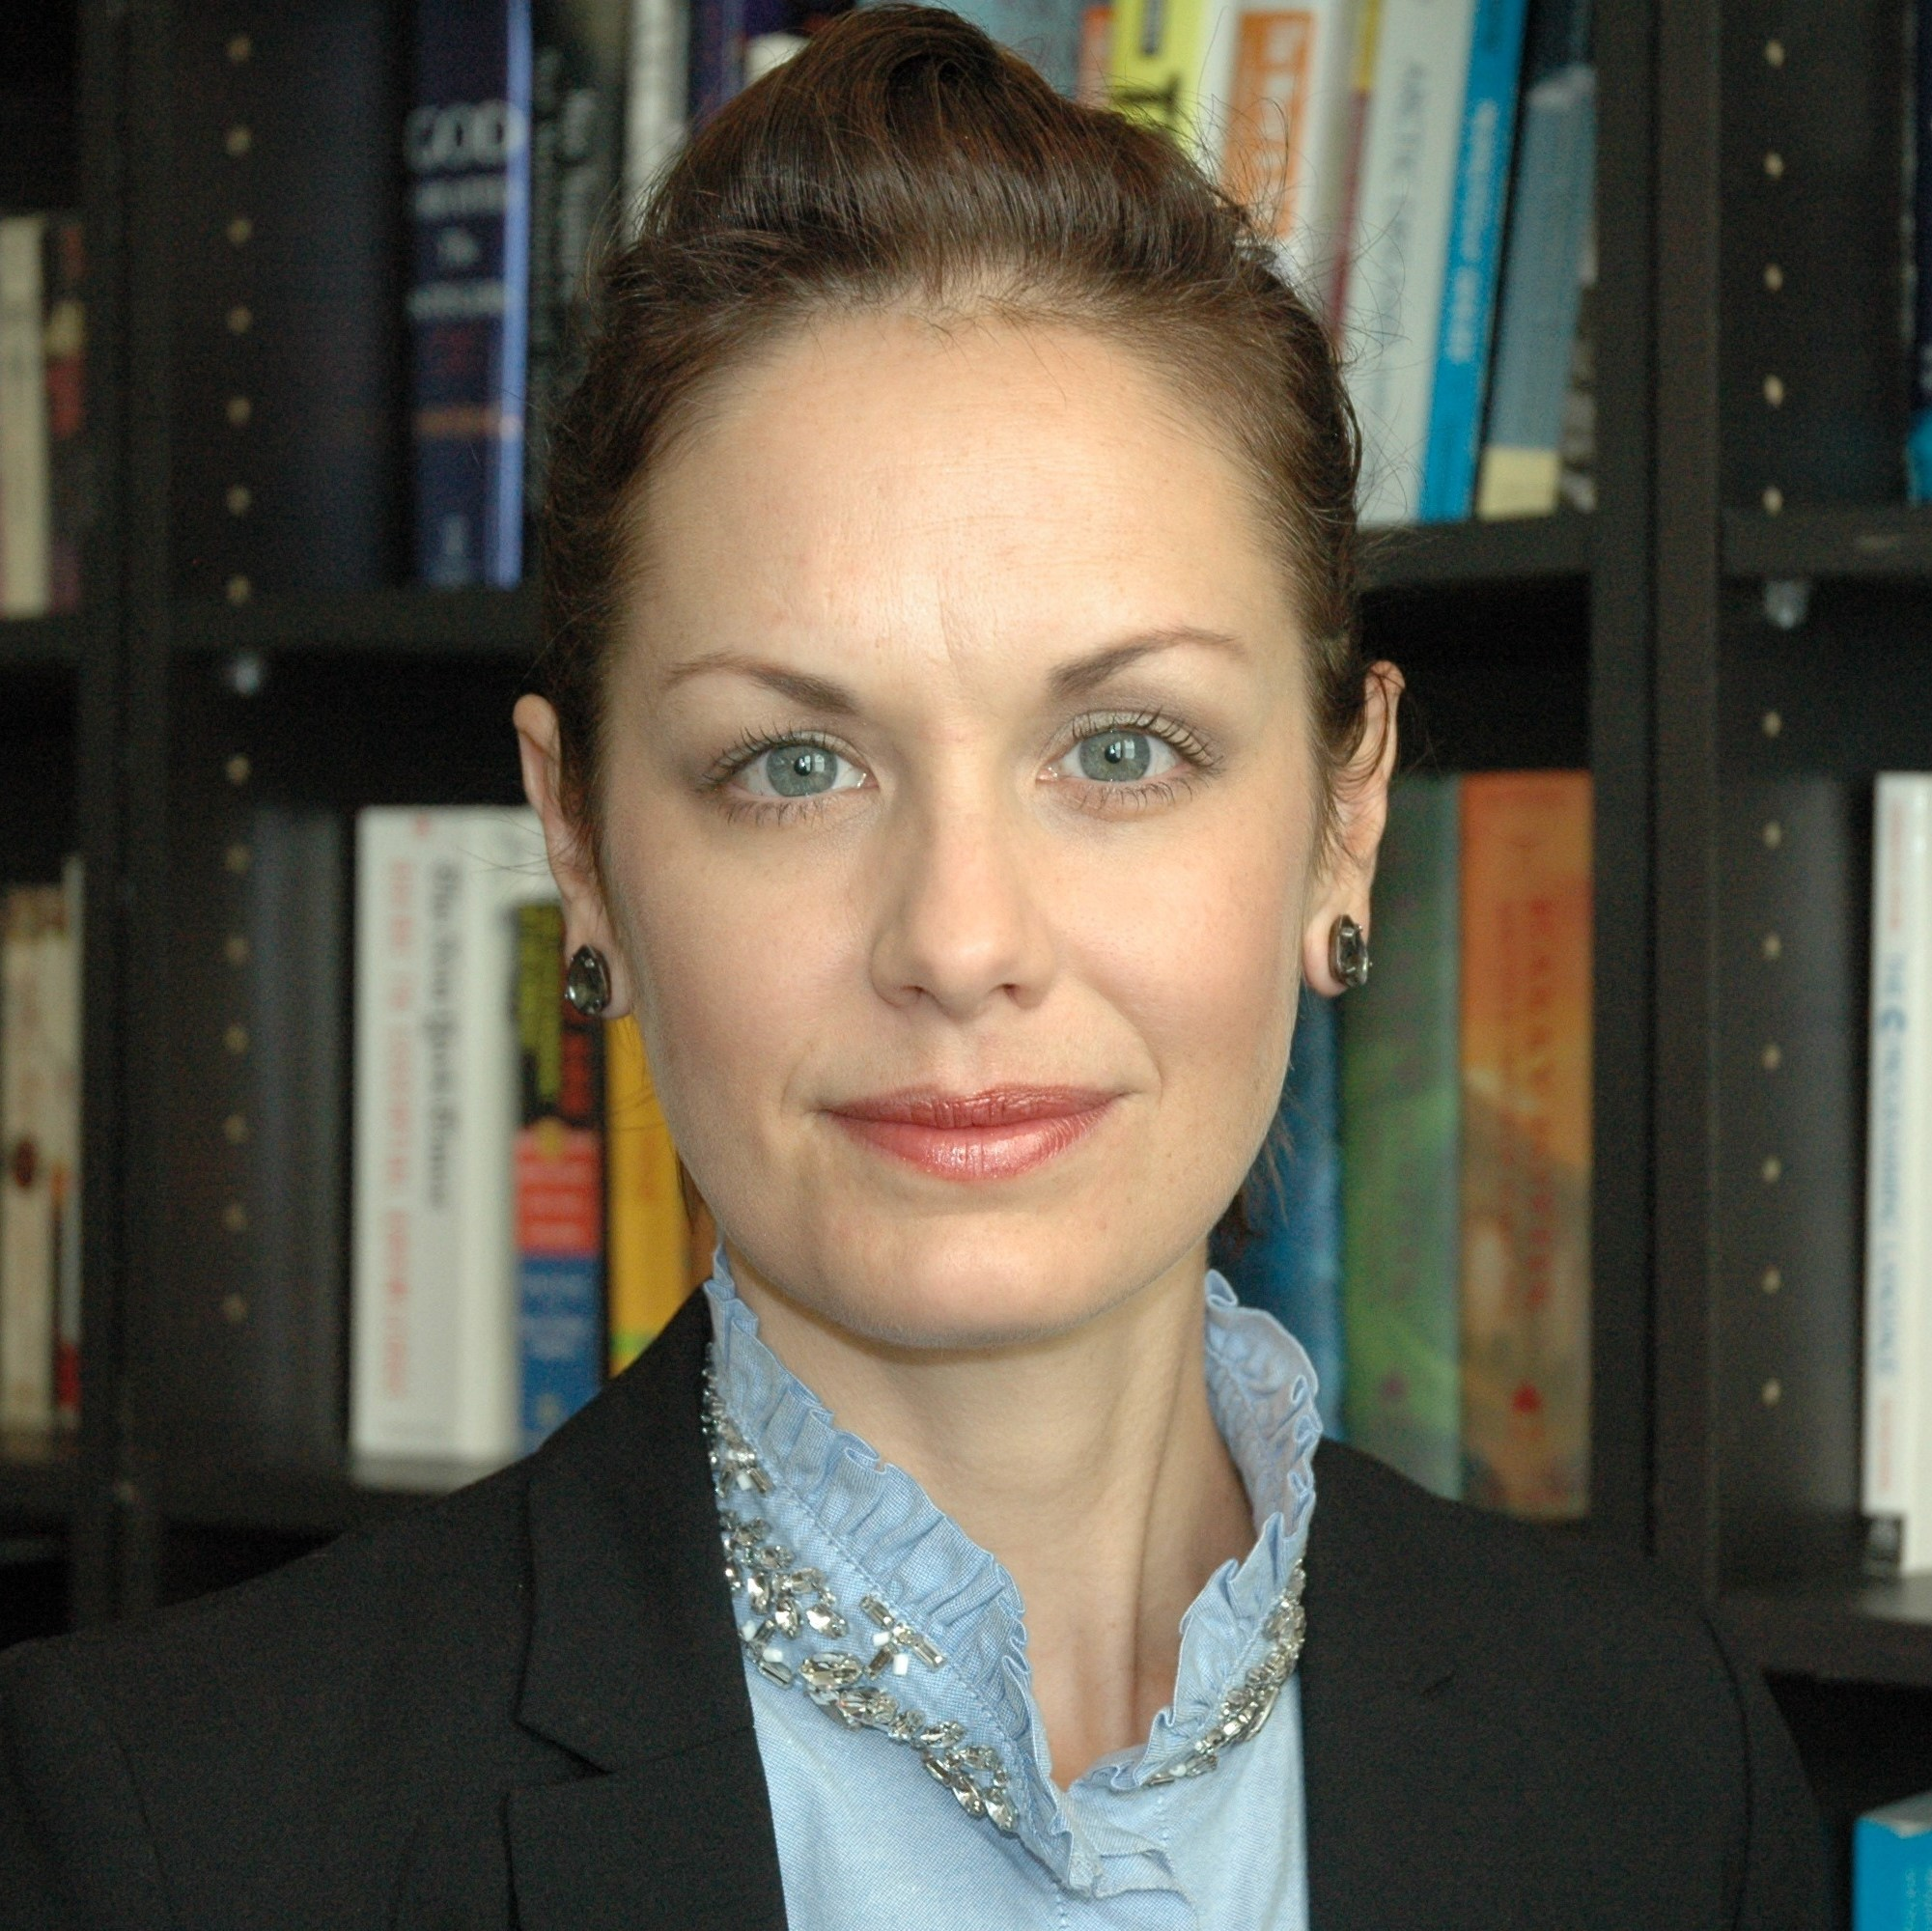 Heather M. Roff, Nonresident Fellow, Foreign Policy, Security and Strategy, The Brookings Institution